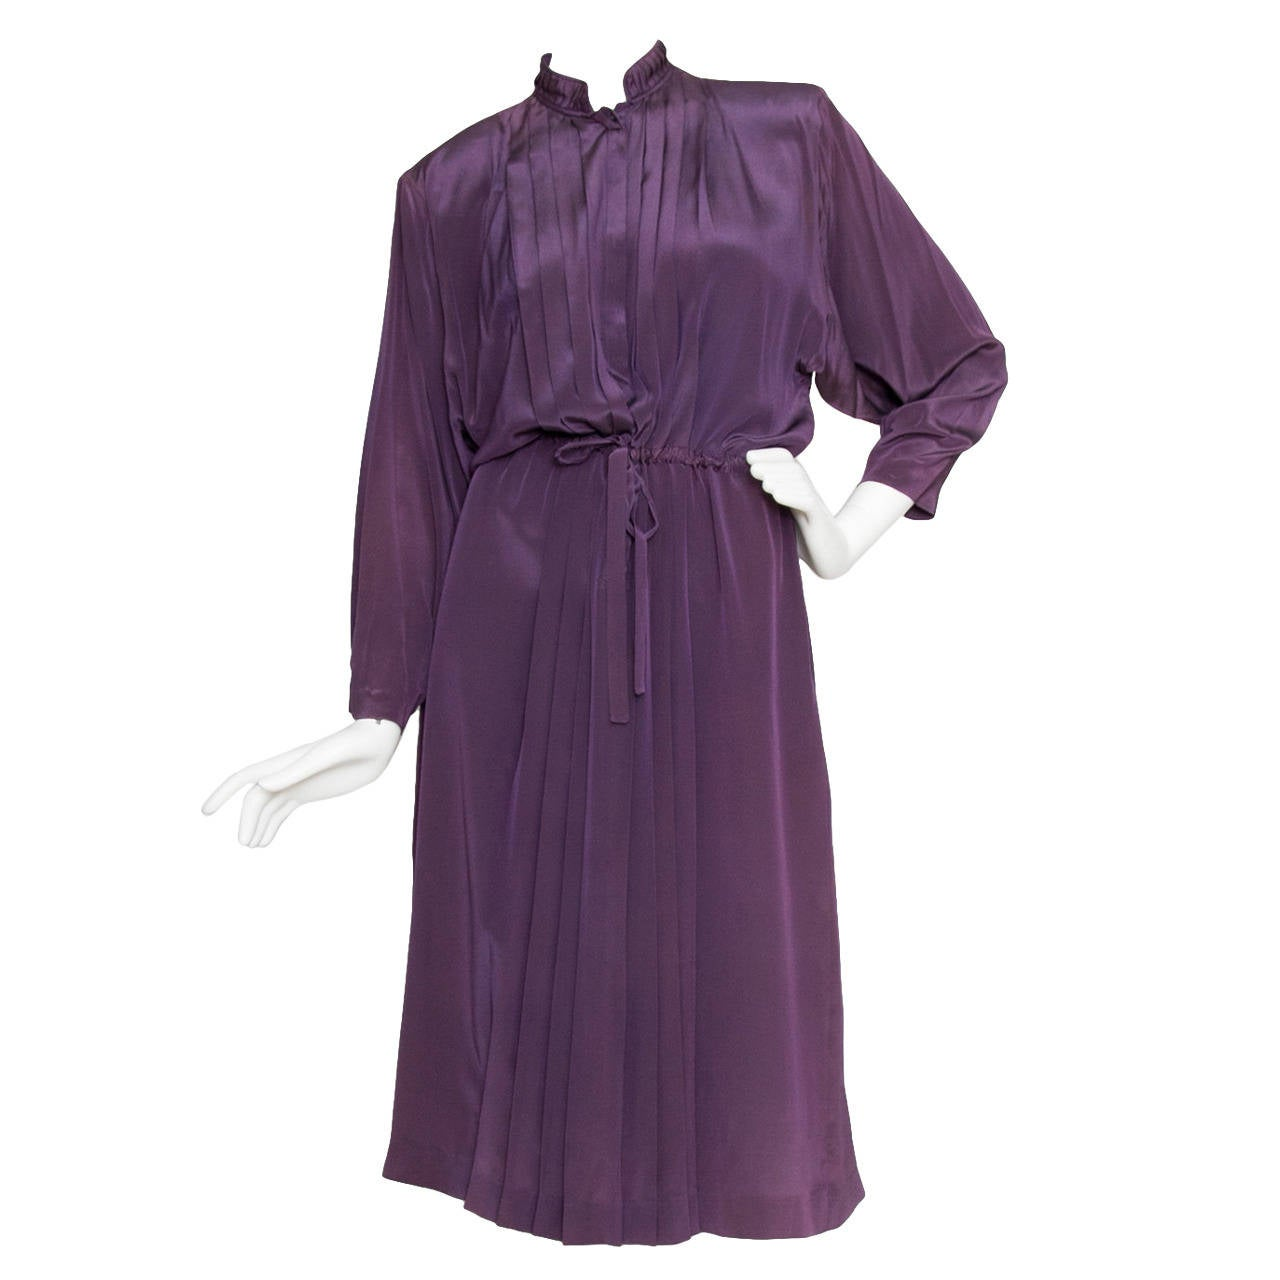 1980s Christian Dior Purple Silk Day Dress 1